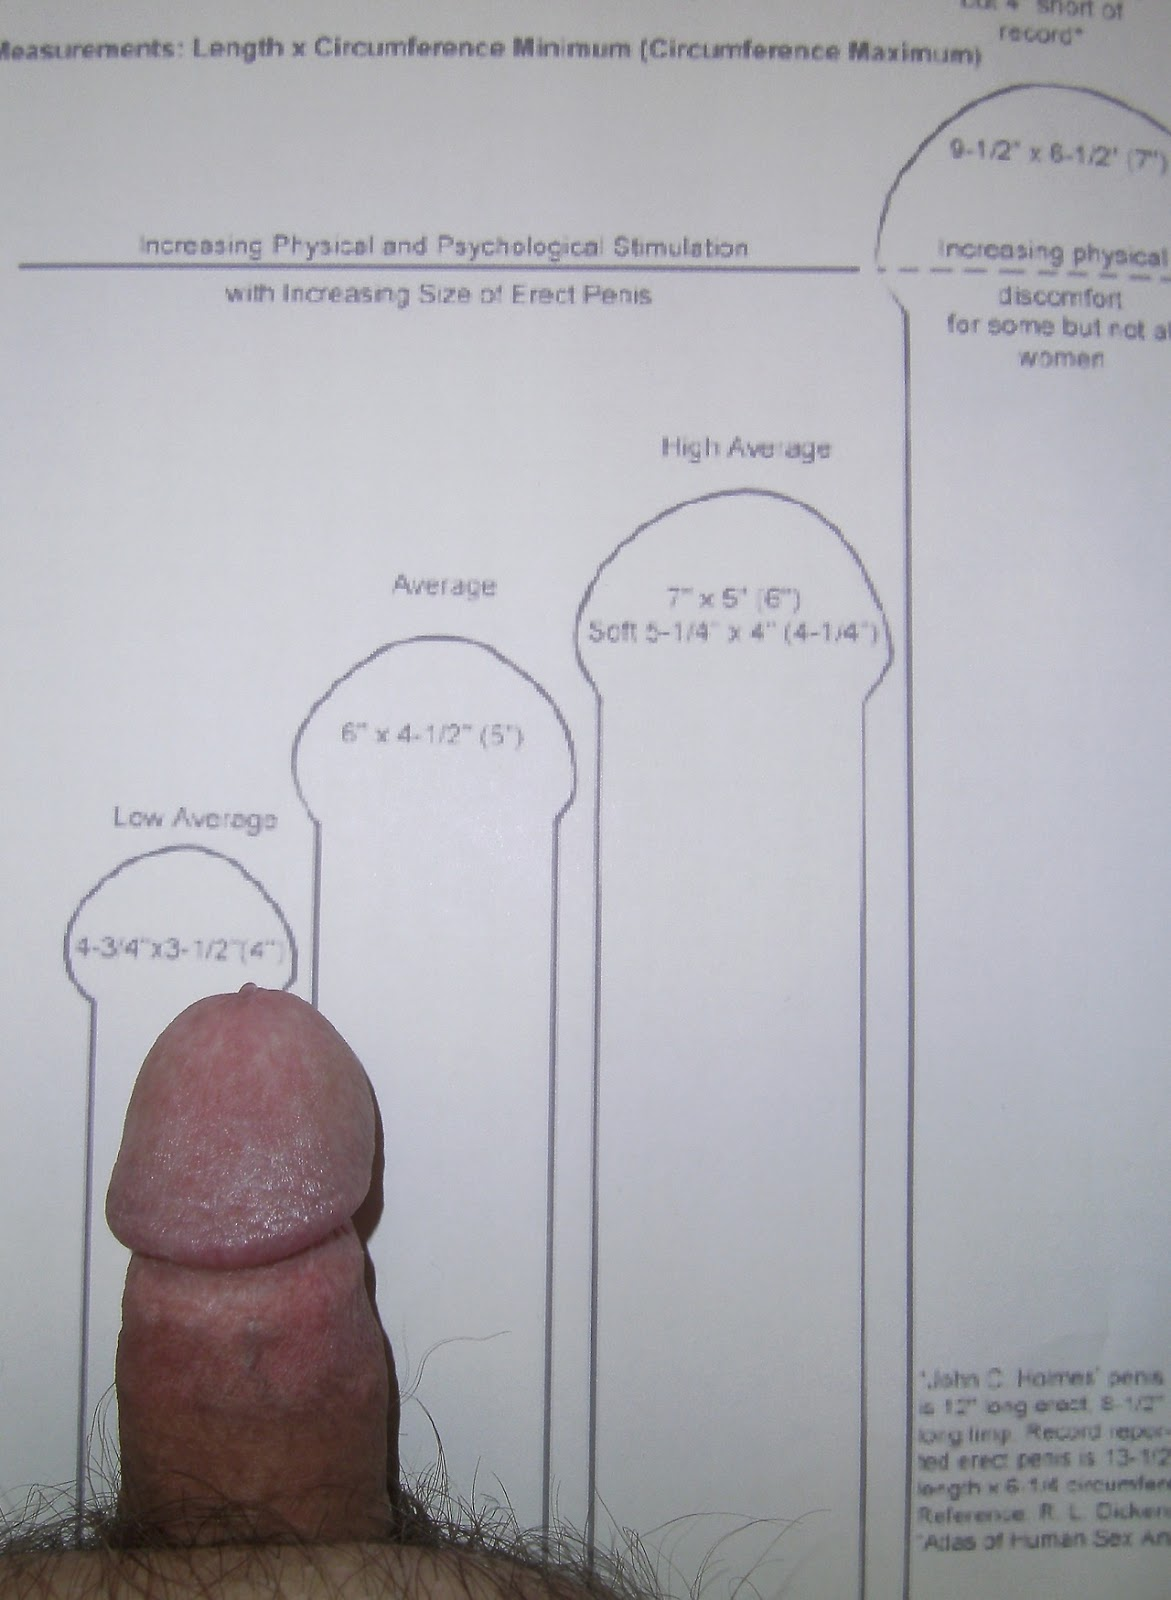 men comparing penis size pictures